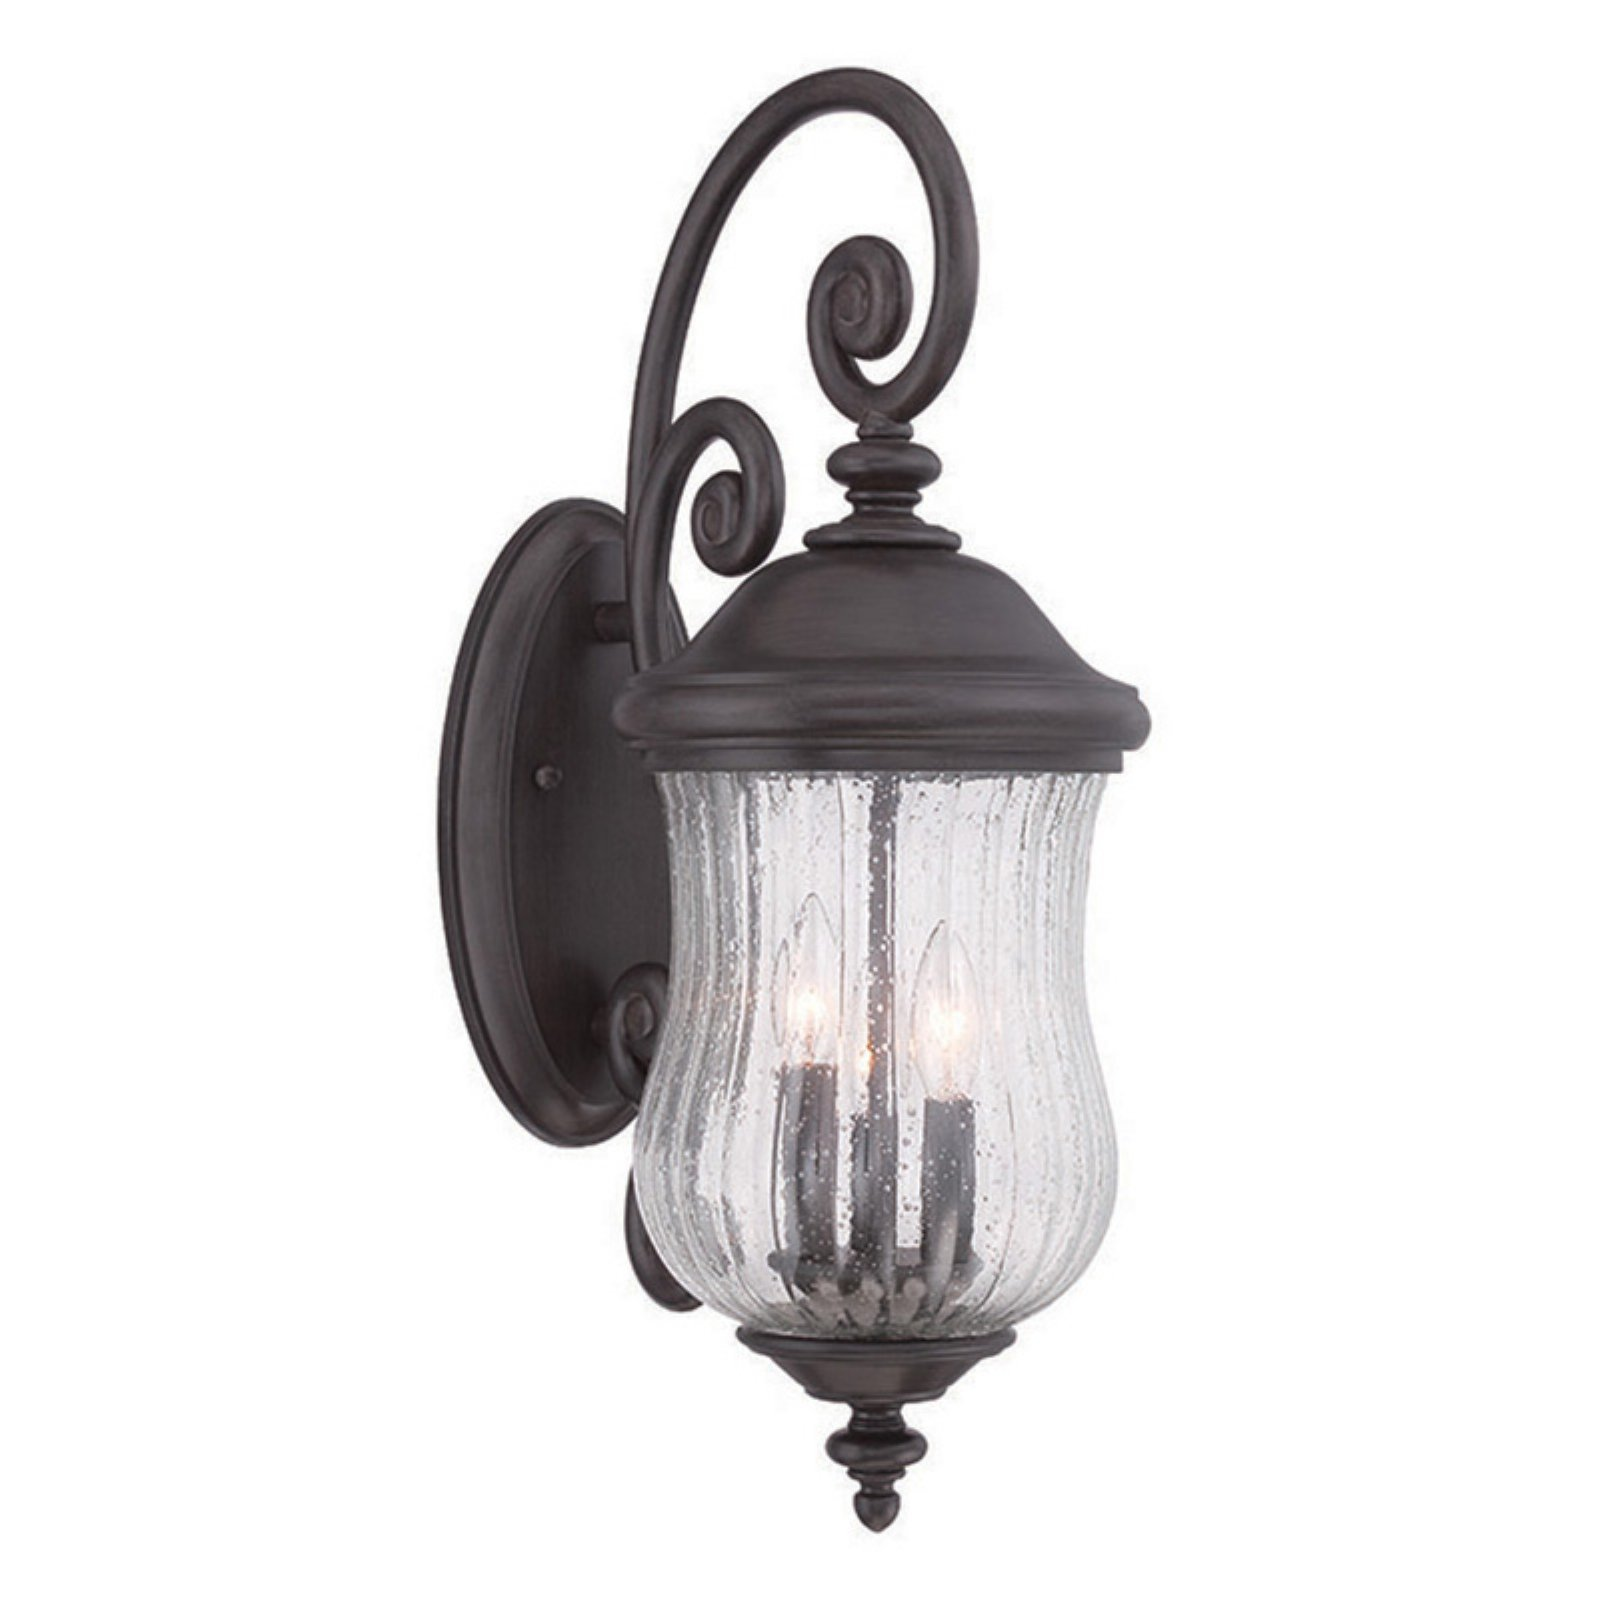 Acclaim Lighting Bellagio Outdoor Wall Lantern Light Fixture